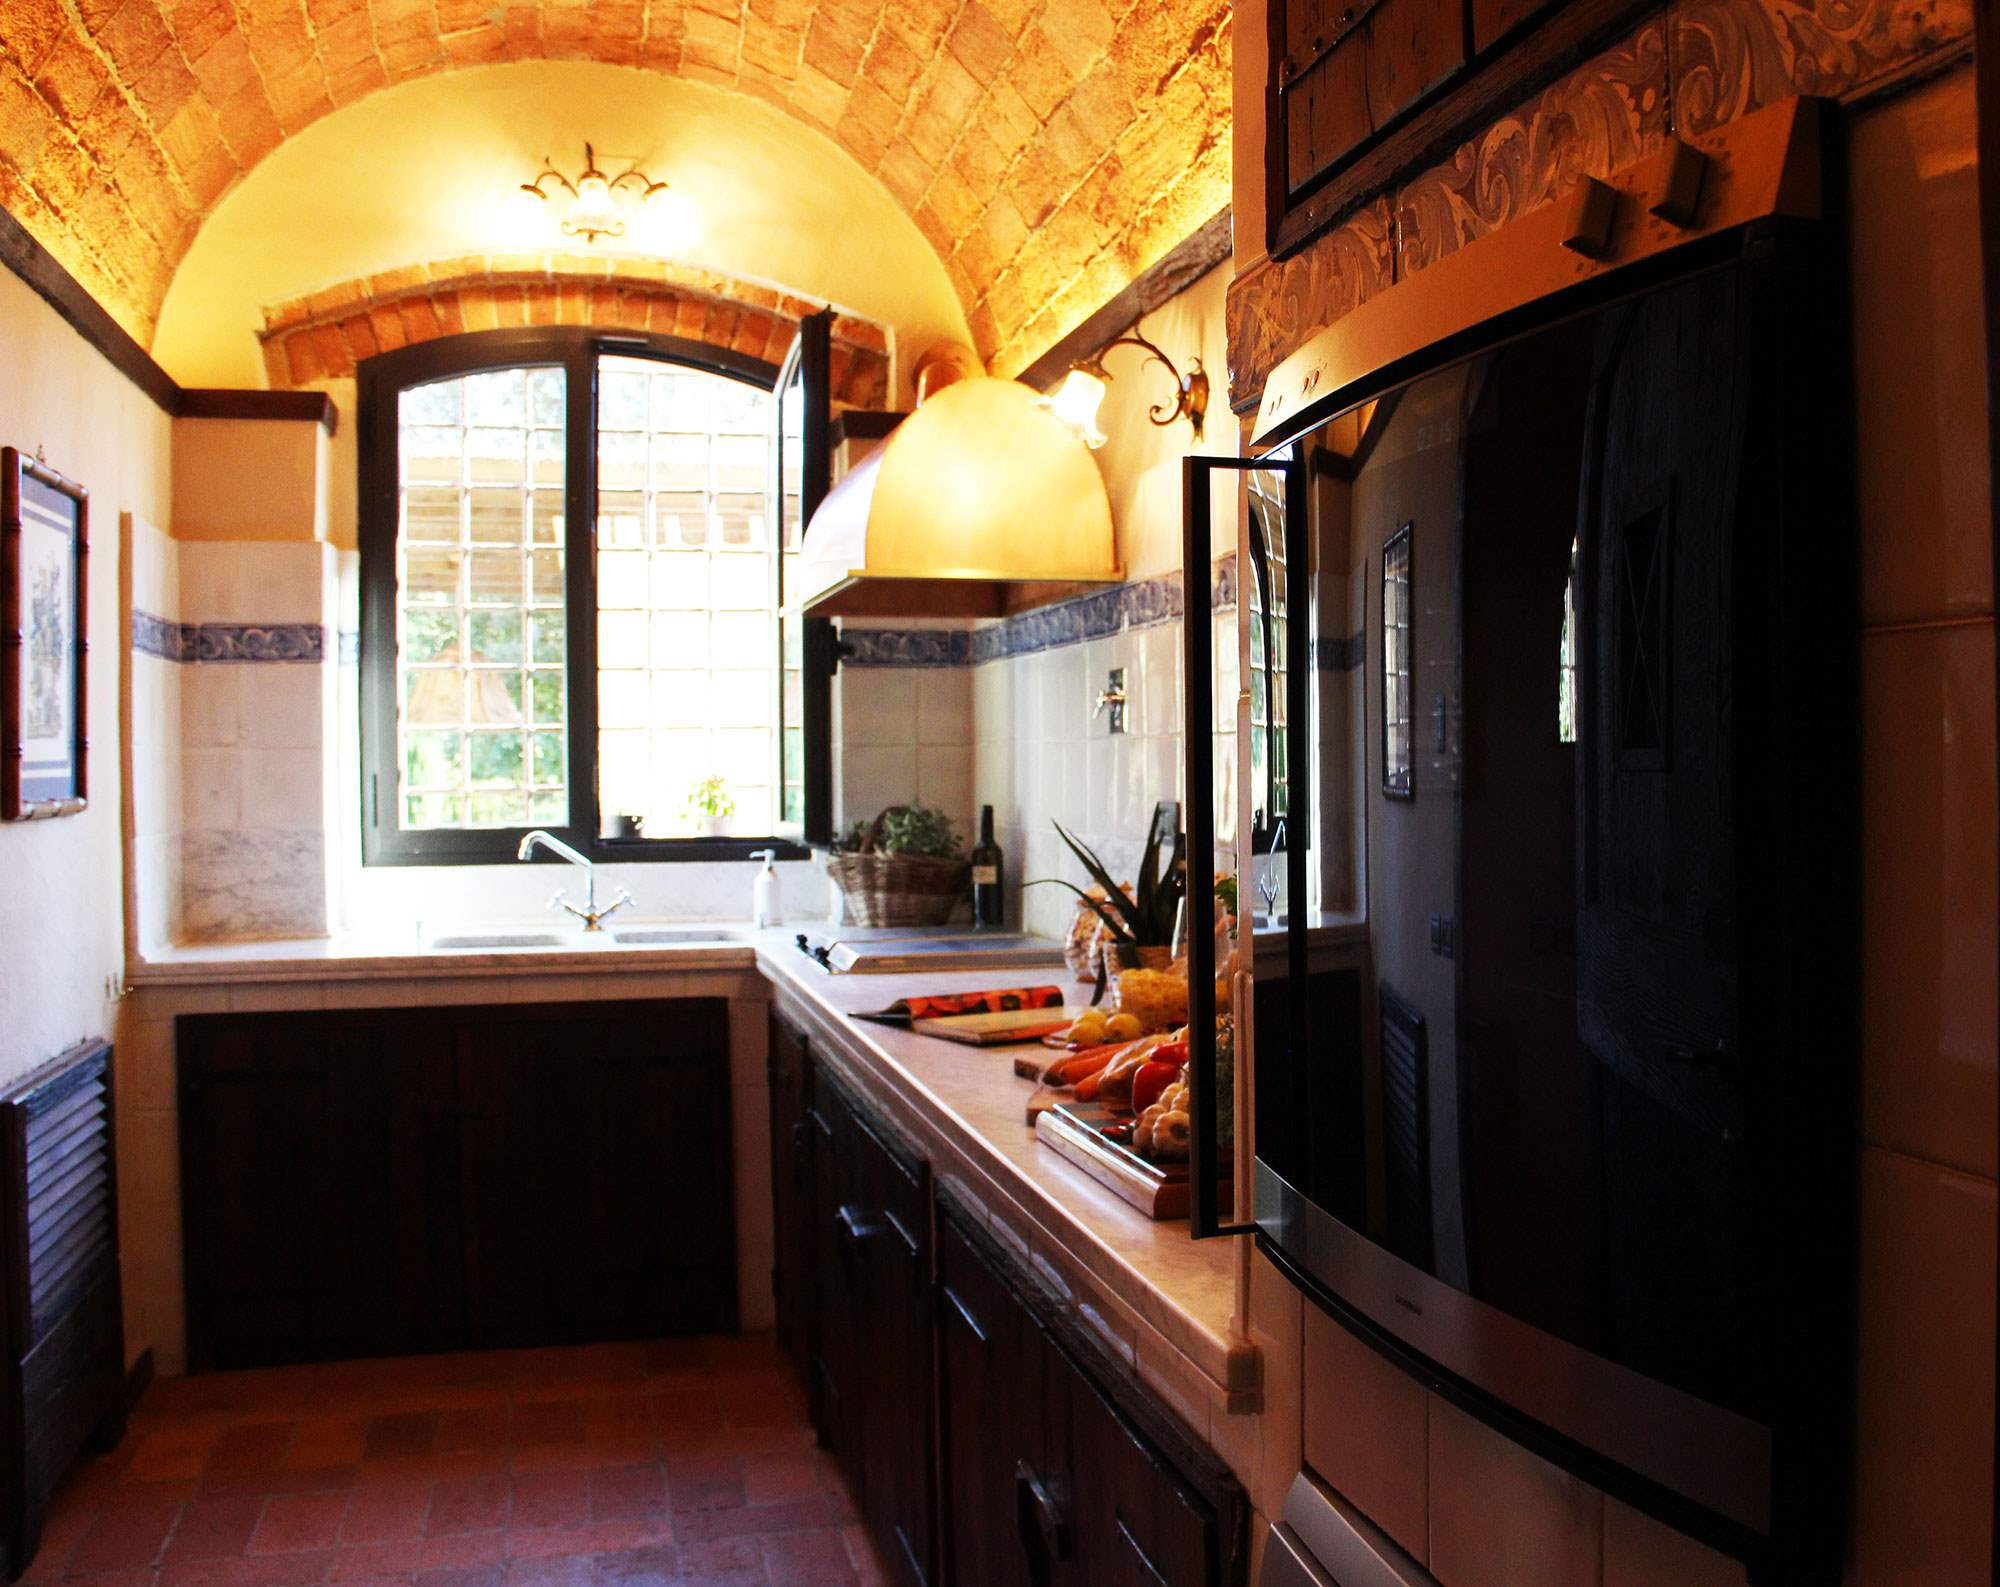 Villa Tuscan, 6 (+2), 3 bedroom villa in Chianti & Countryside, Tuscany Photo #9